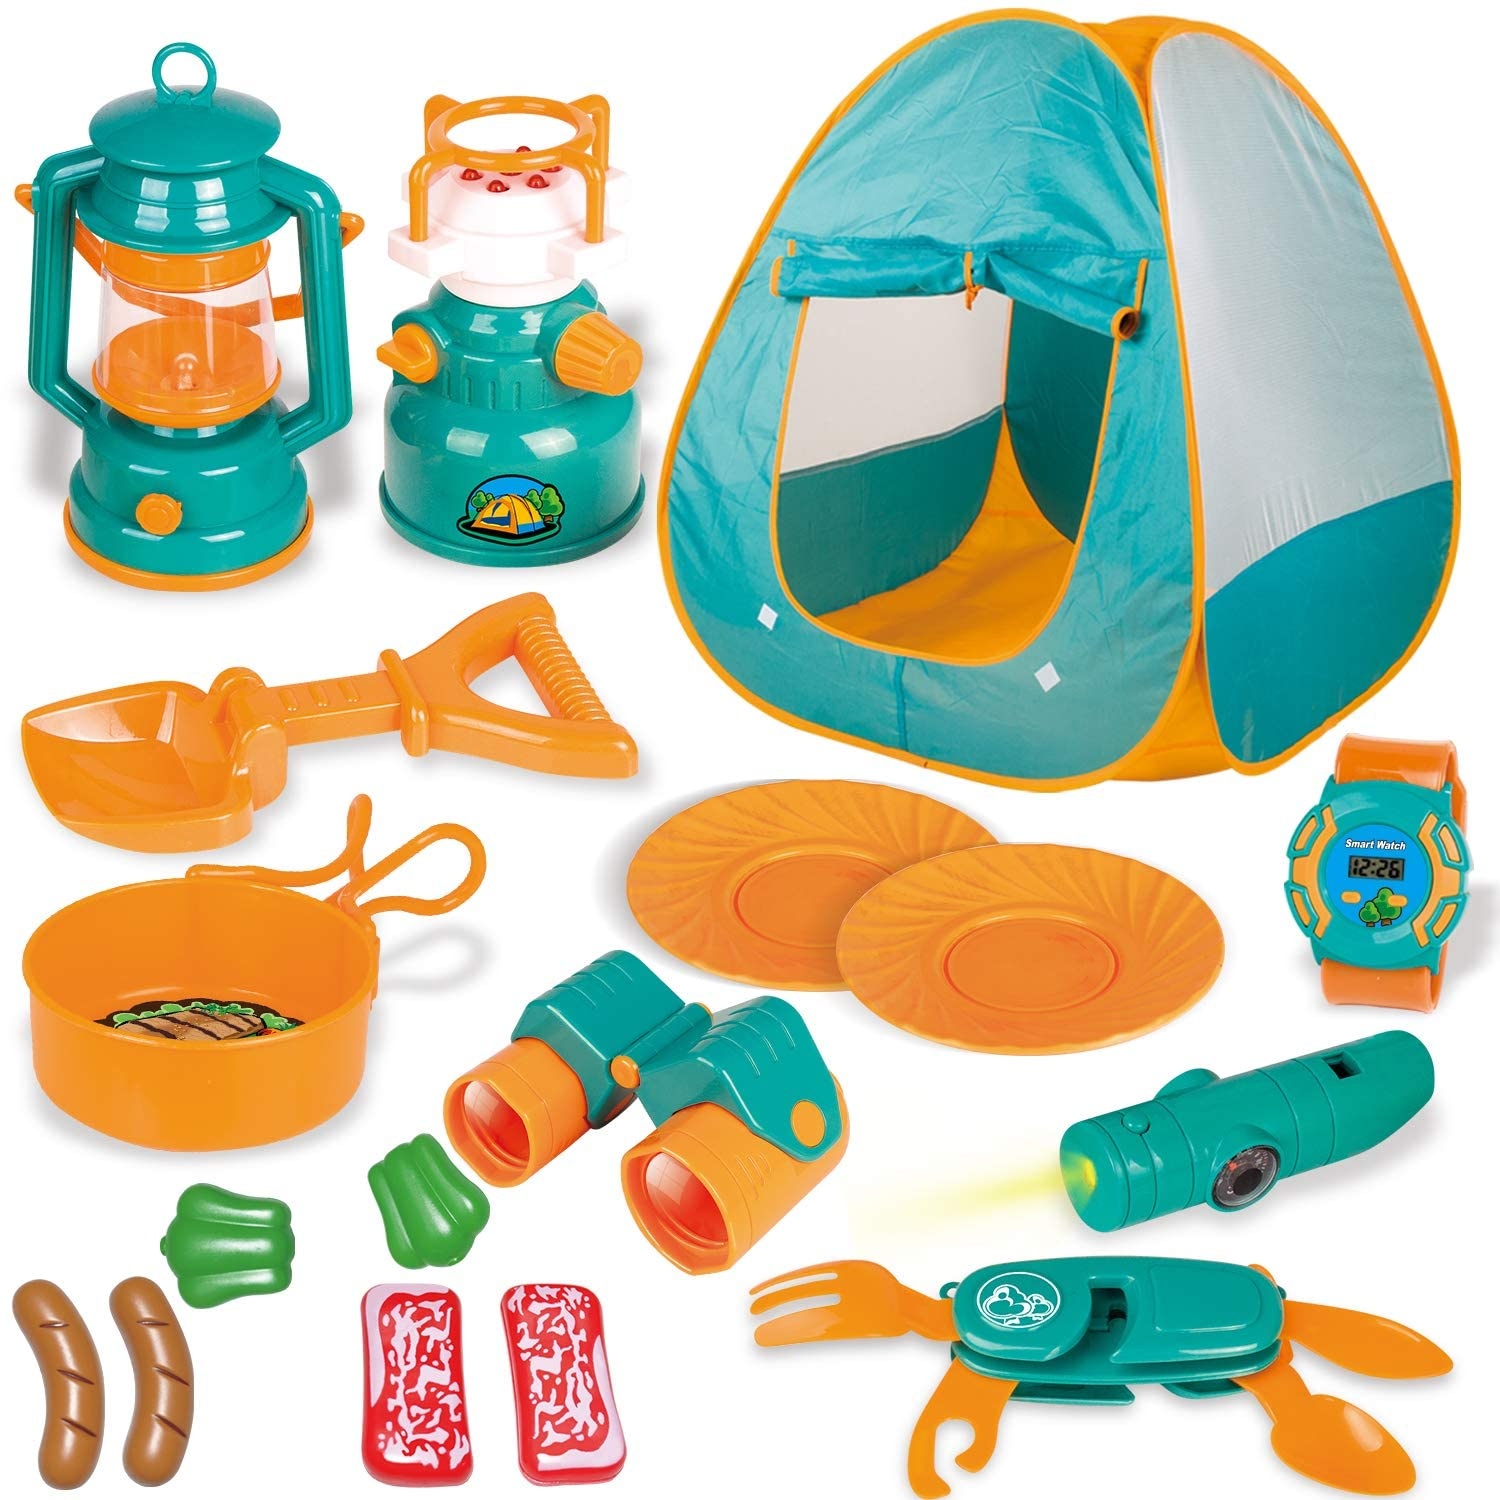 This Fun Kids Pop Up Play Tent with Camping Gear